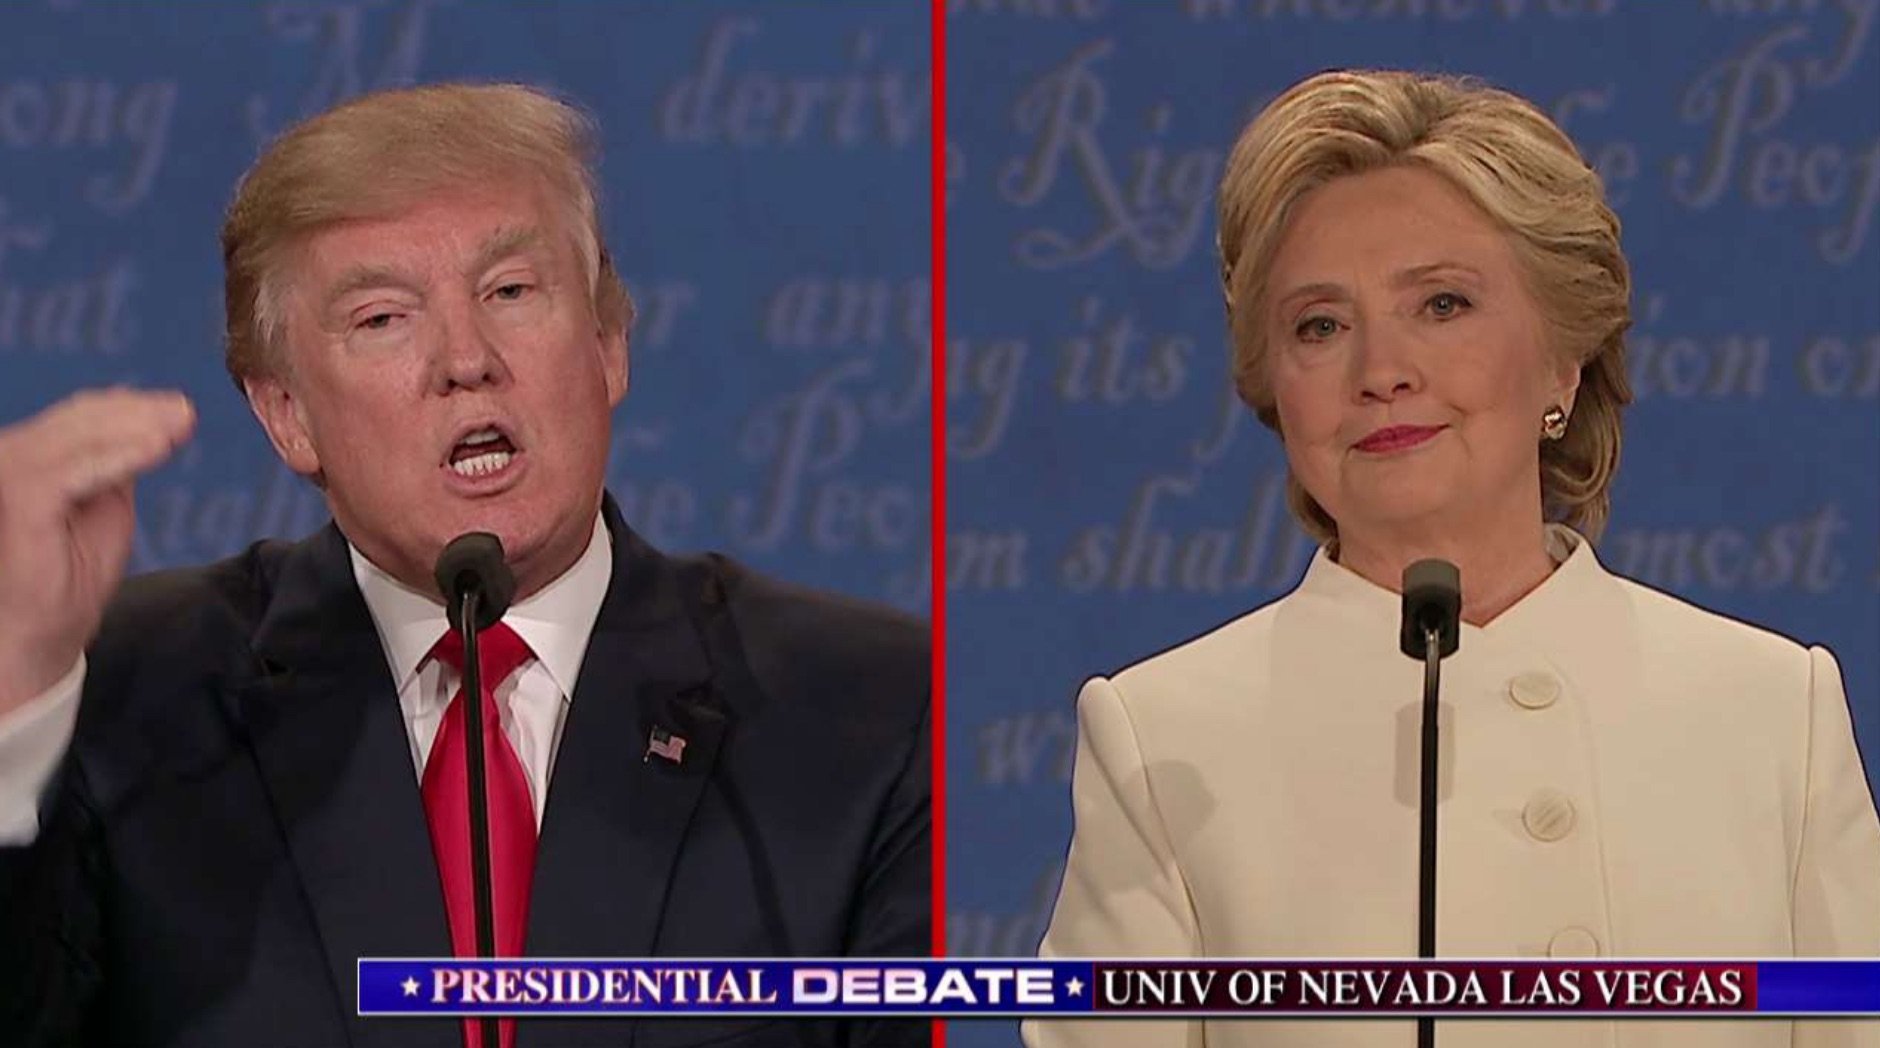 #Debate: Trump Declines to Say He'll Accept Results of Election, Media Apoplectic